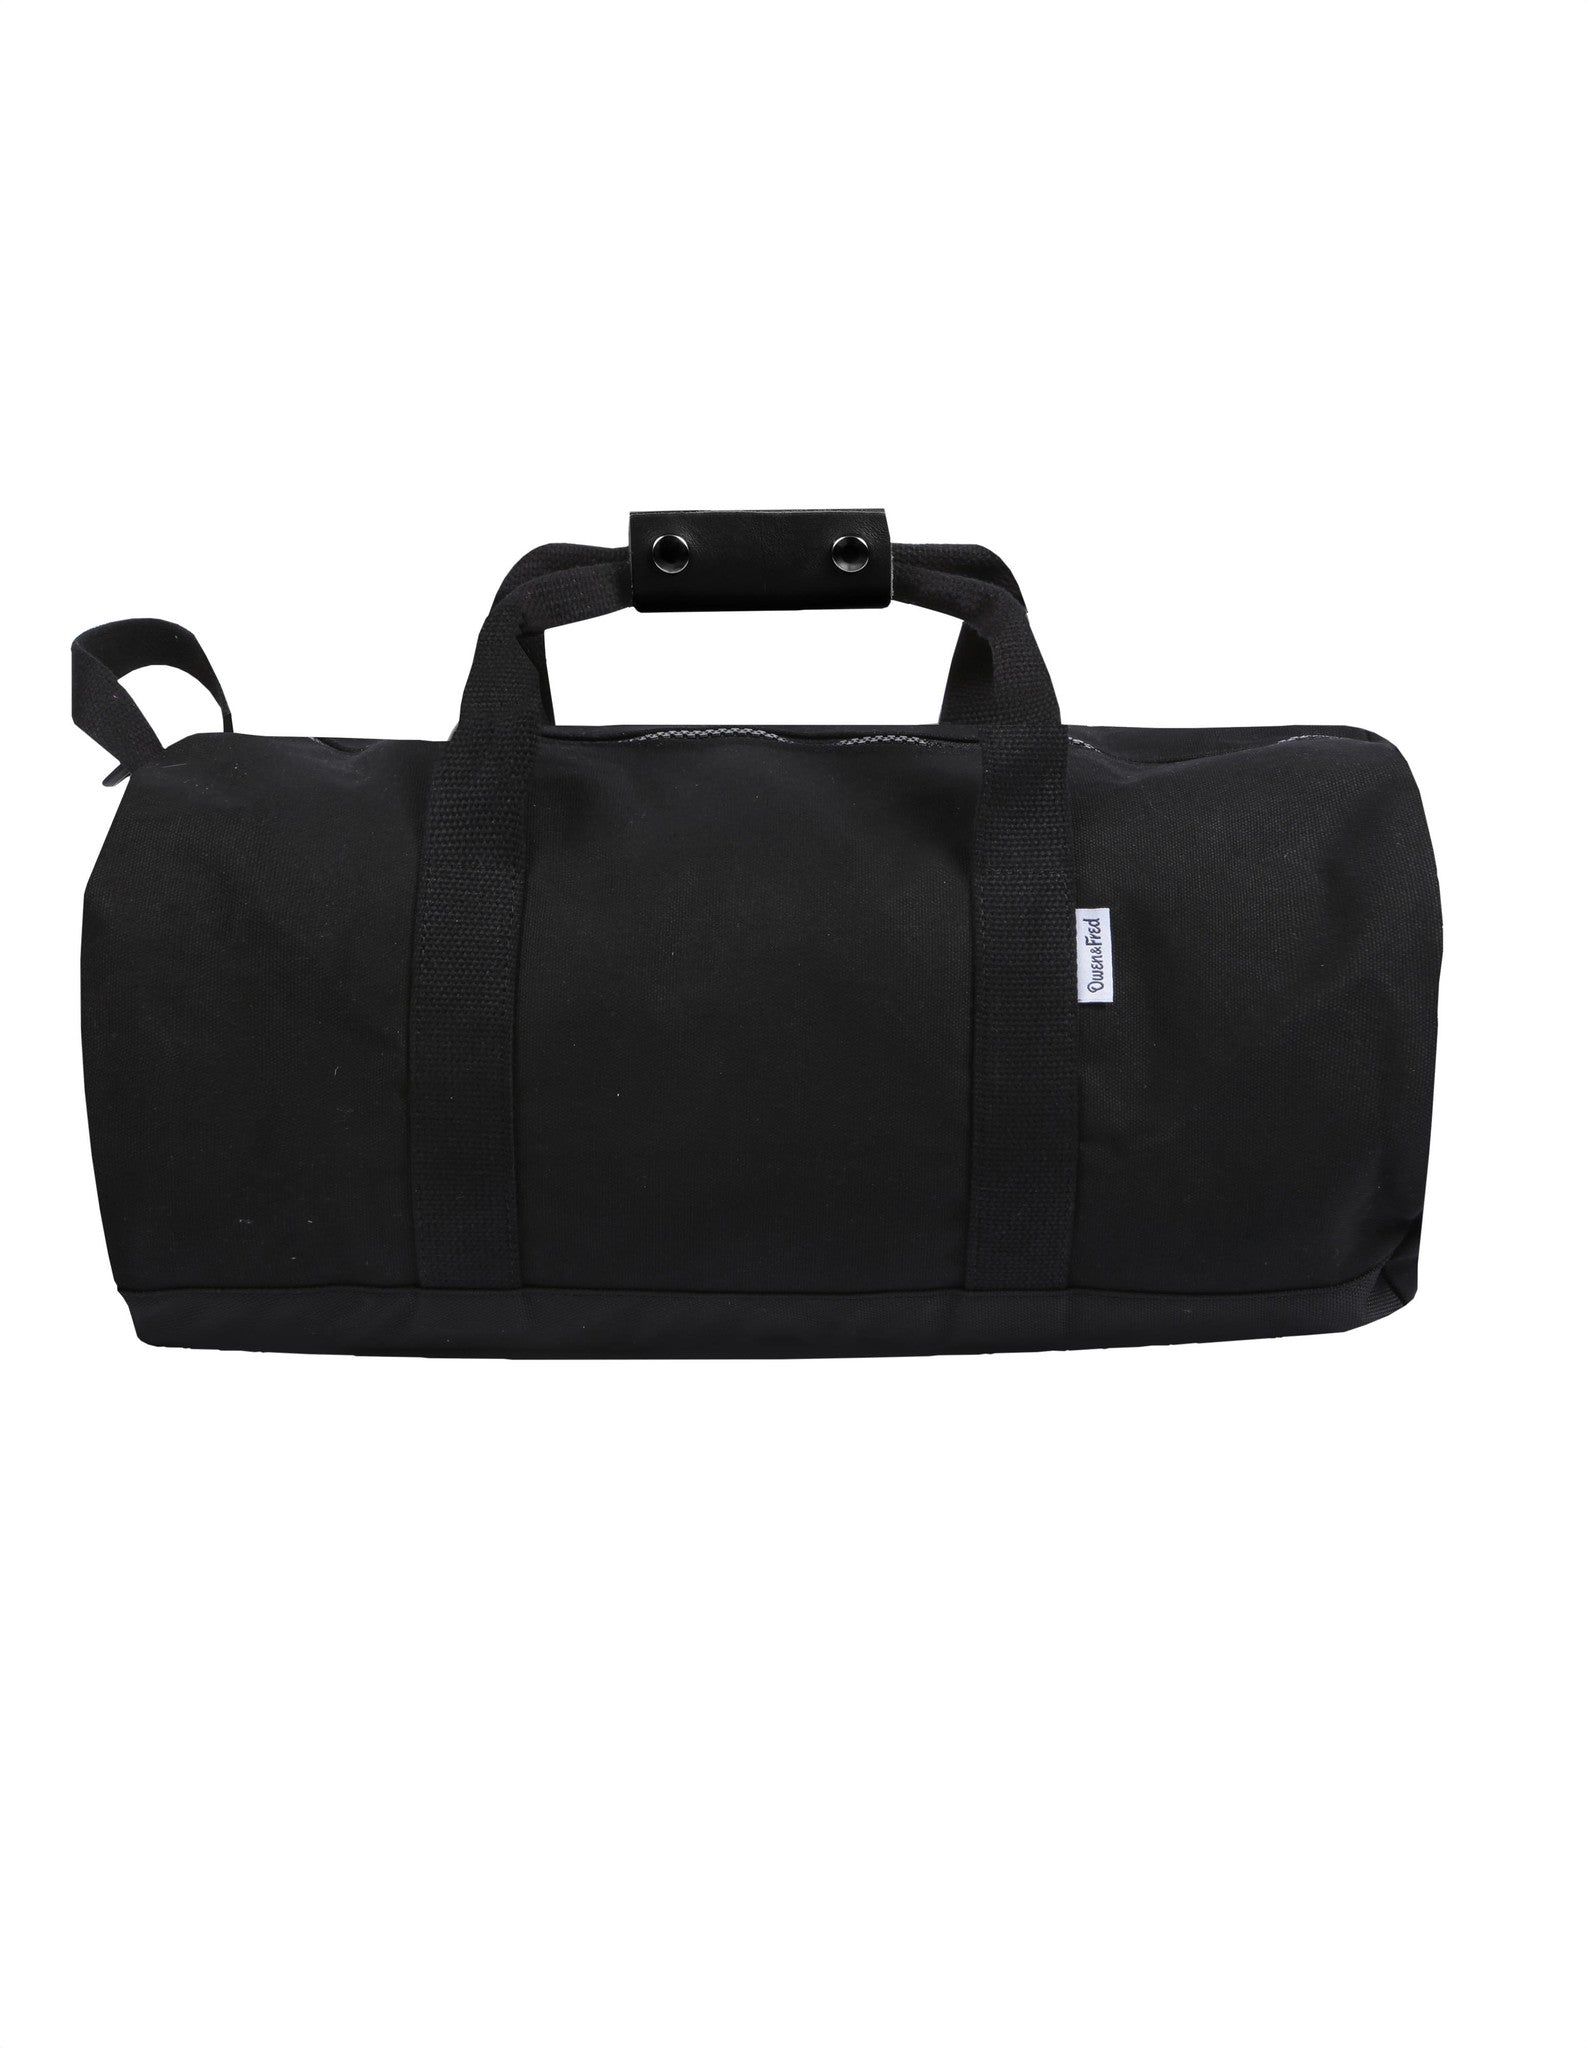 Side of Black Work Hard, Play Hard canvas duffel bag by Owen & Fred